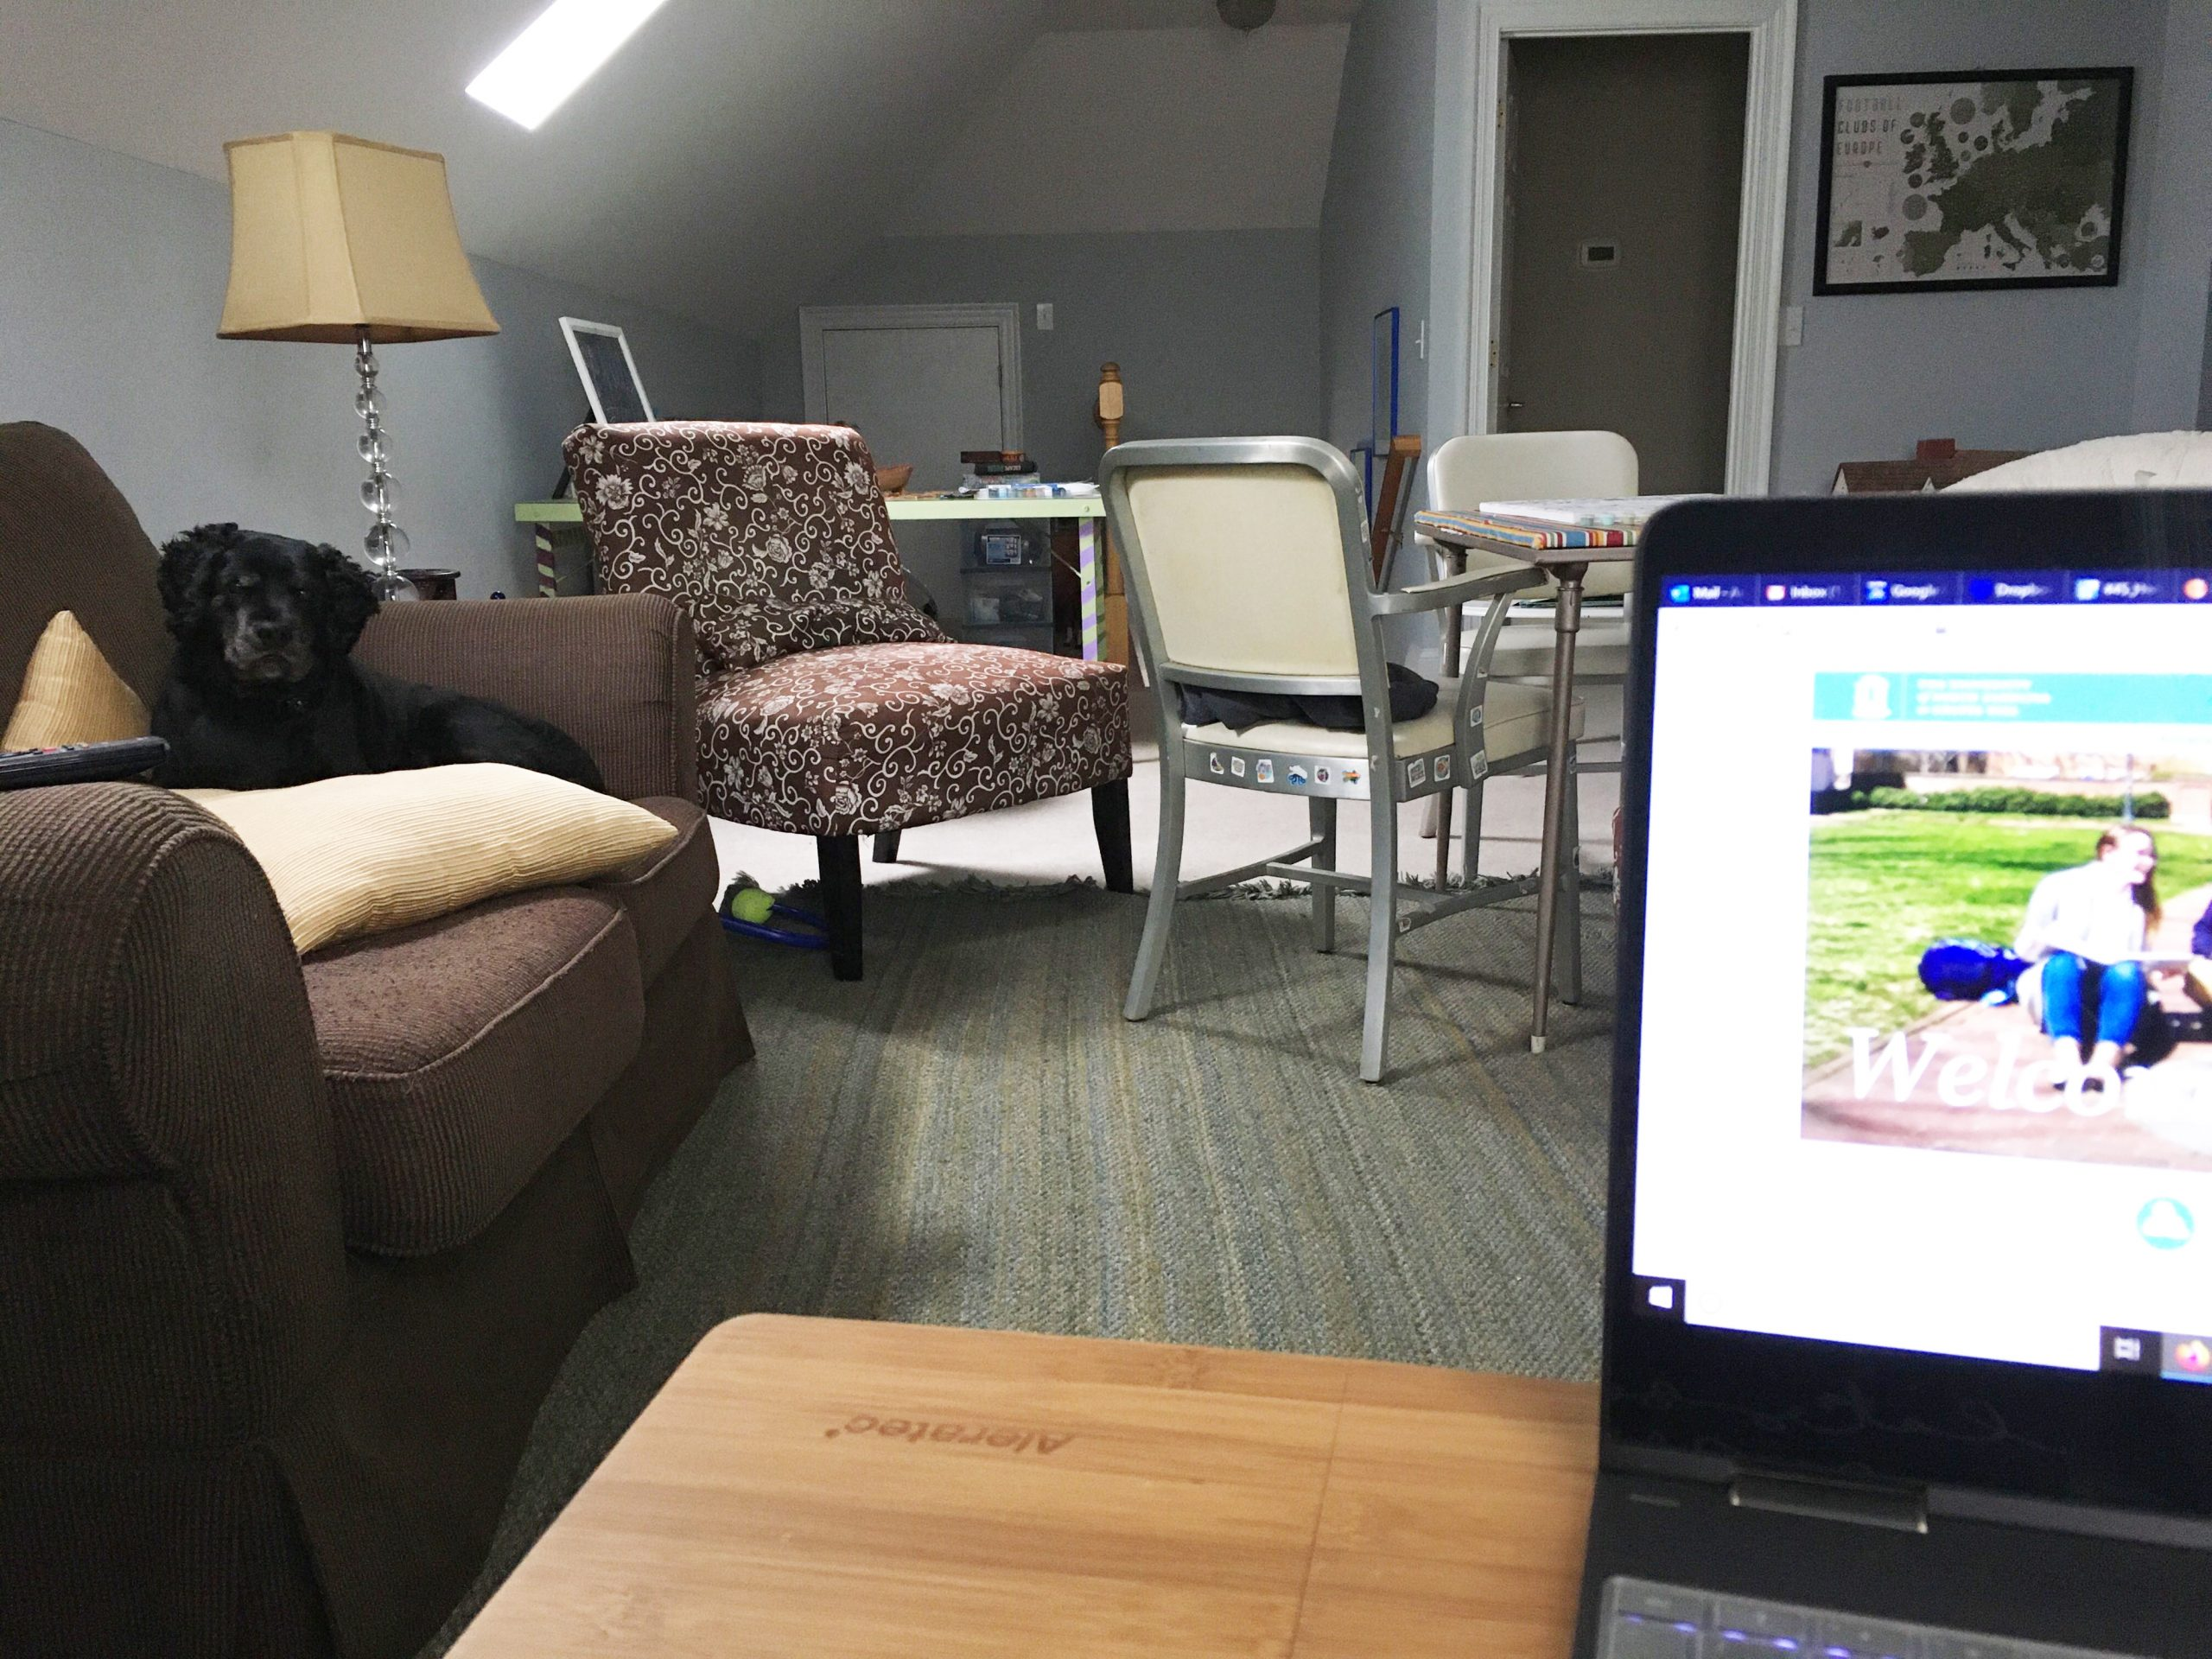 A photo of a laptop from the viewer's perspective with a clean, furnished room in the background and a black dog on the far couch.